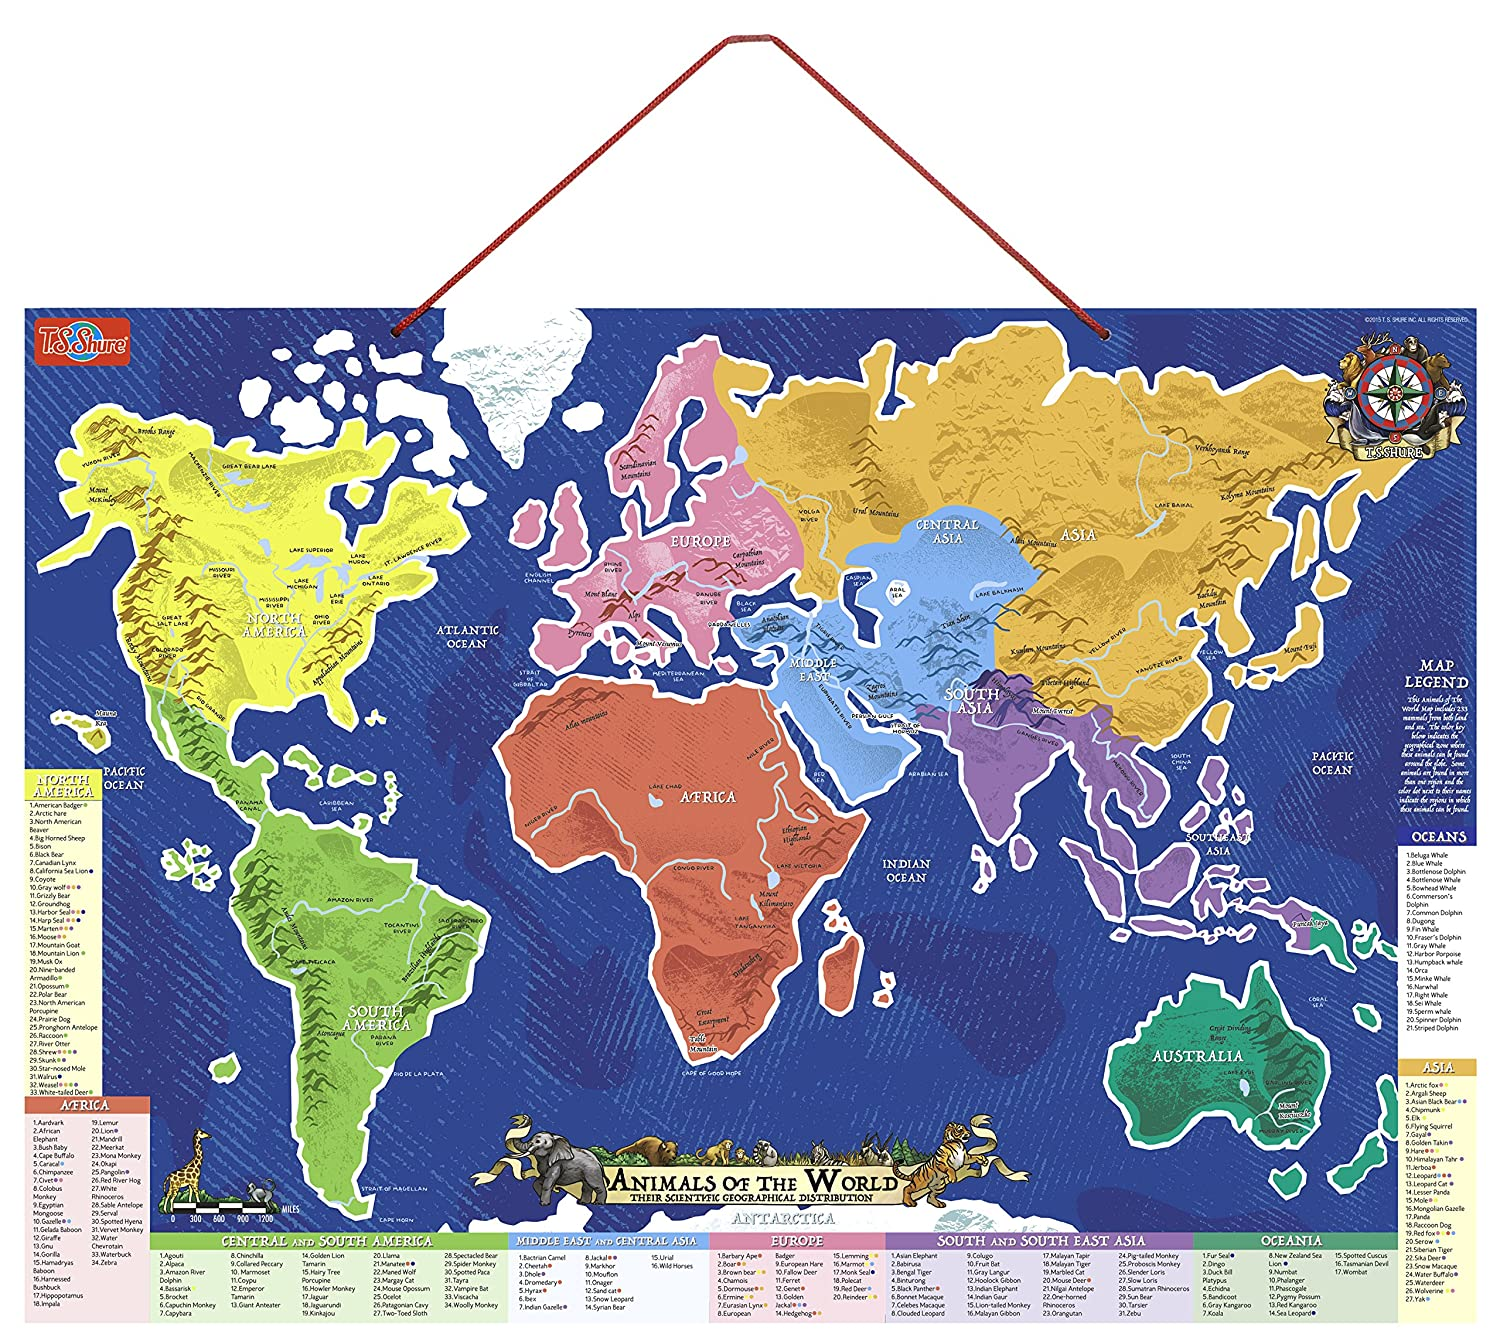 Amazoncom TS Shure Animals of the World Wooden Magnetic Map